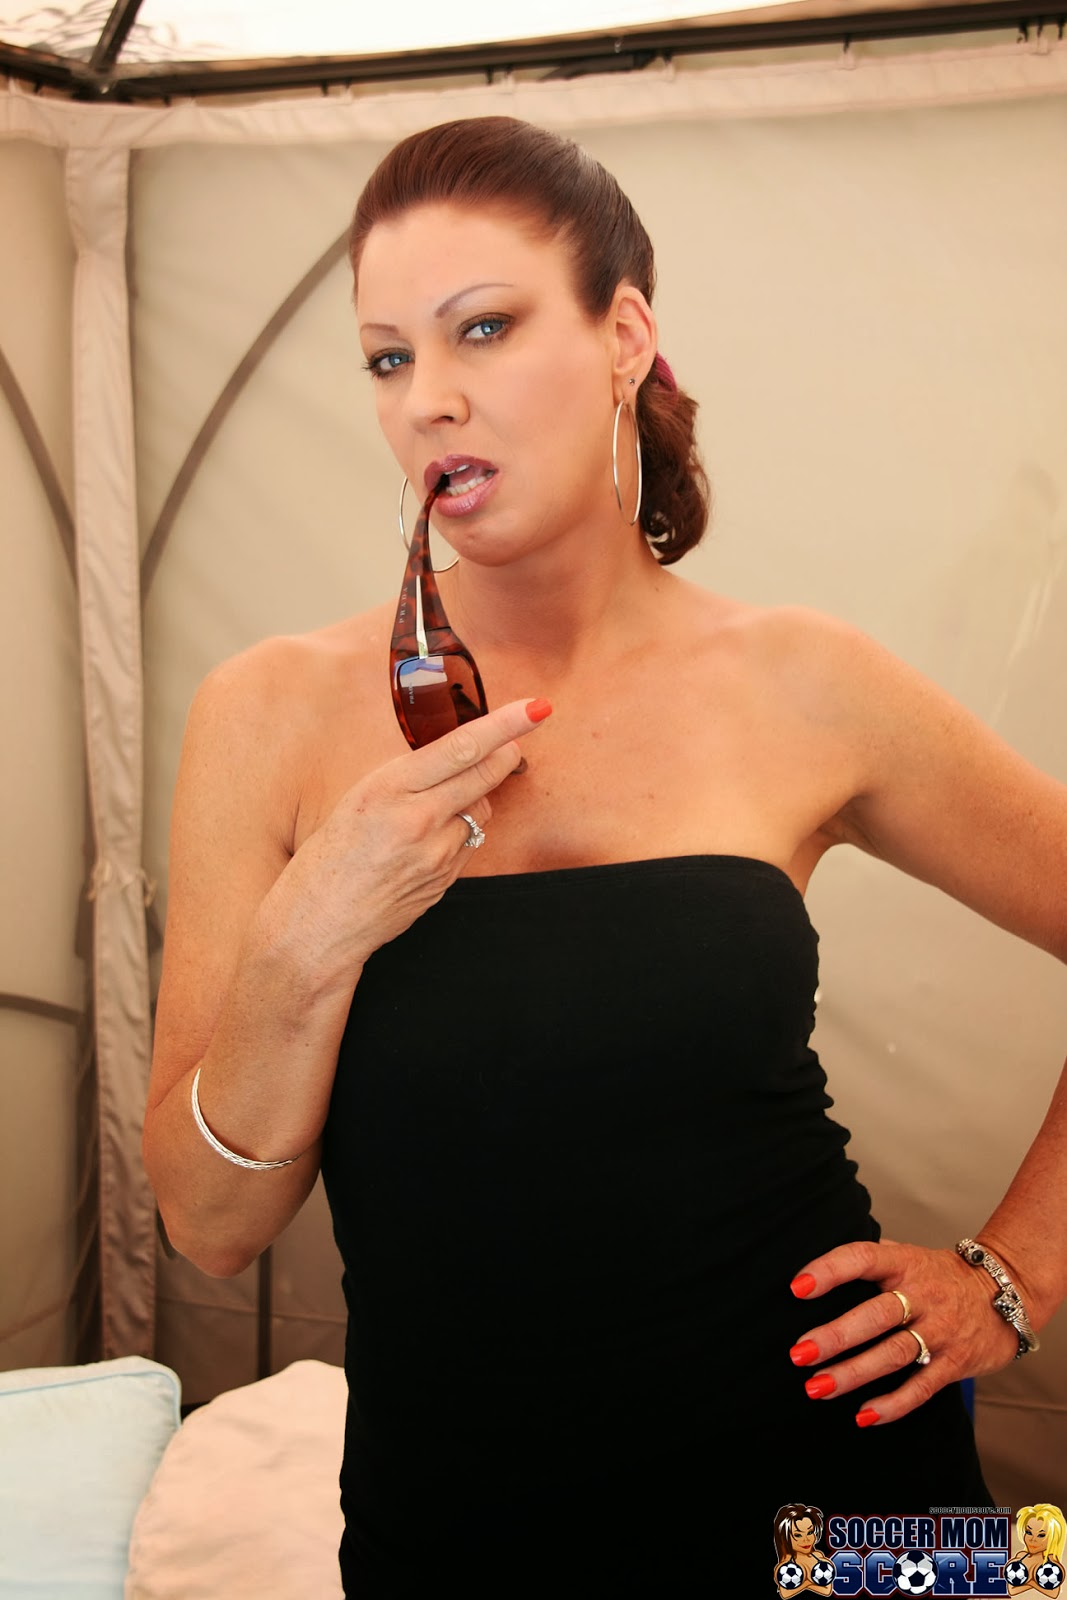 Vanessa videl pics 50 plus milf for 50 plus pictures